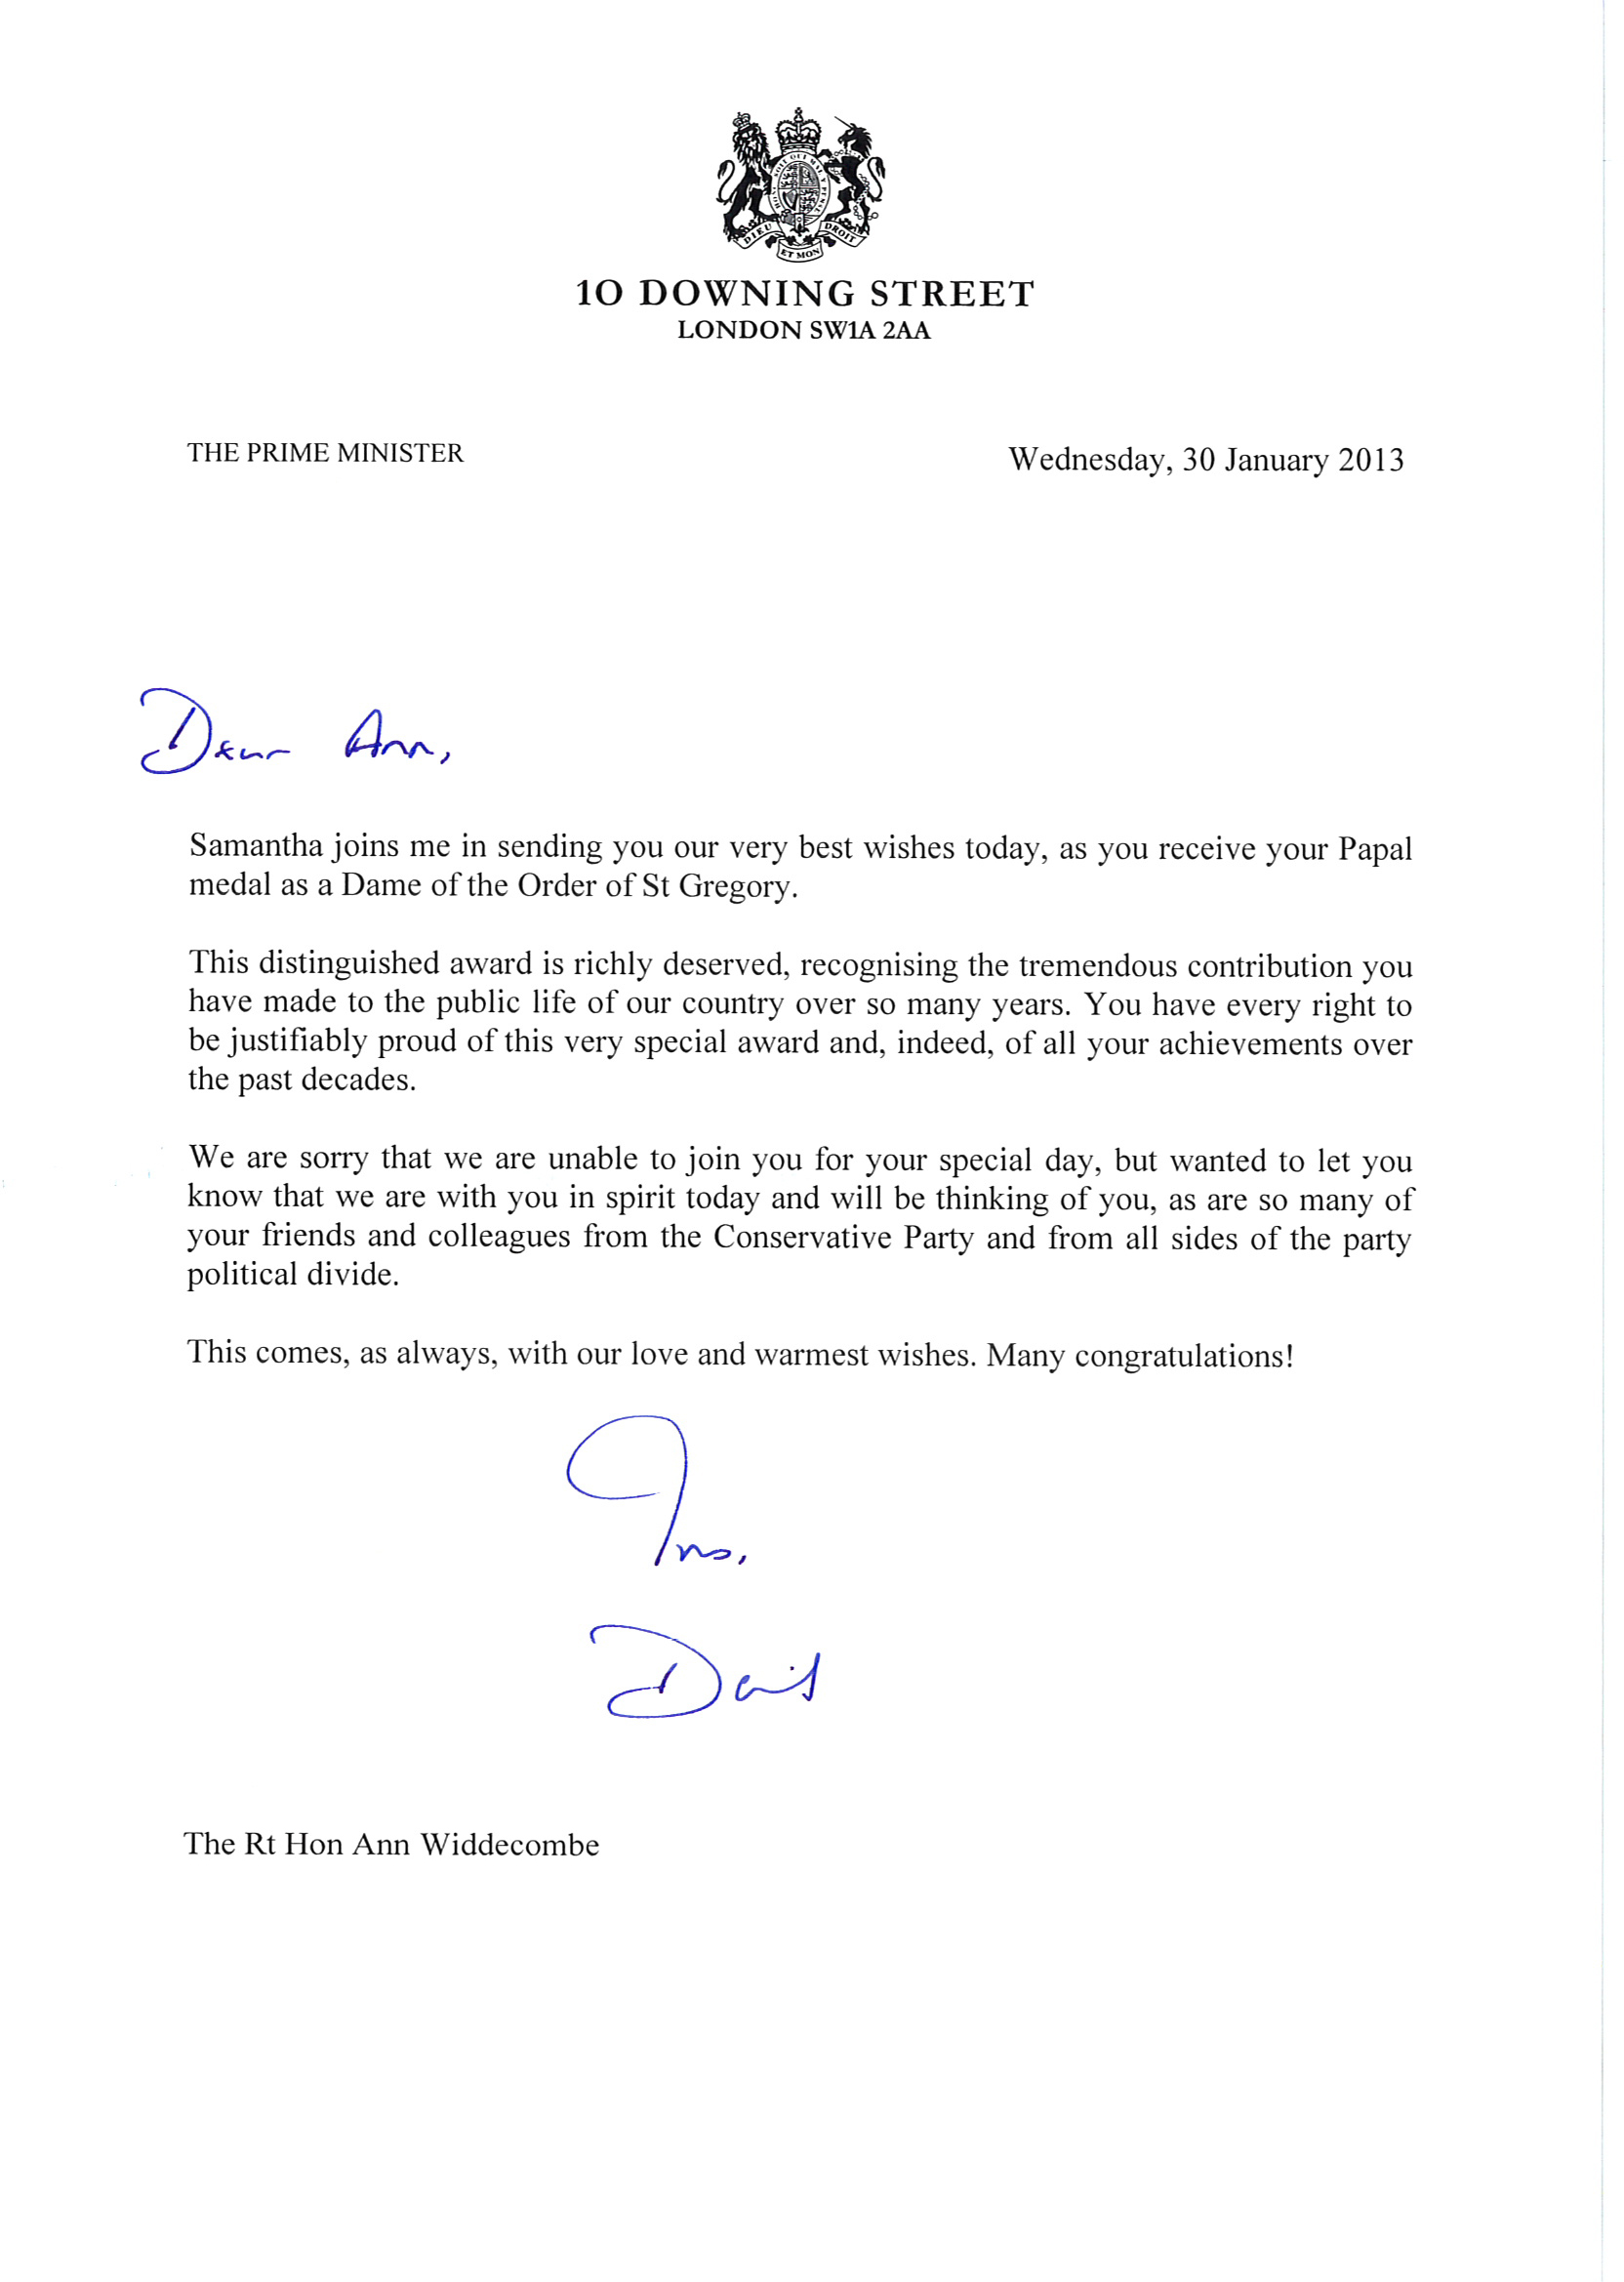 Camerons gay marriage dilemma and his love for ann widdecombe ann widdecombe cameron letter spiritdancerdesigns Image collections